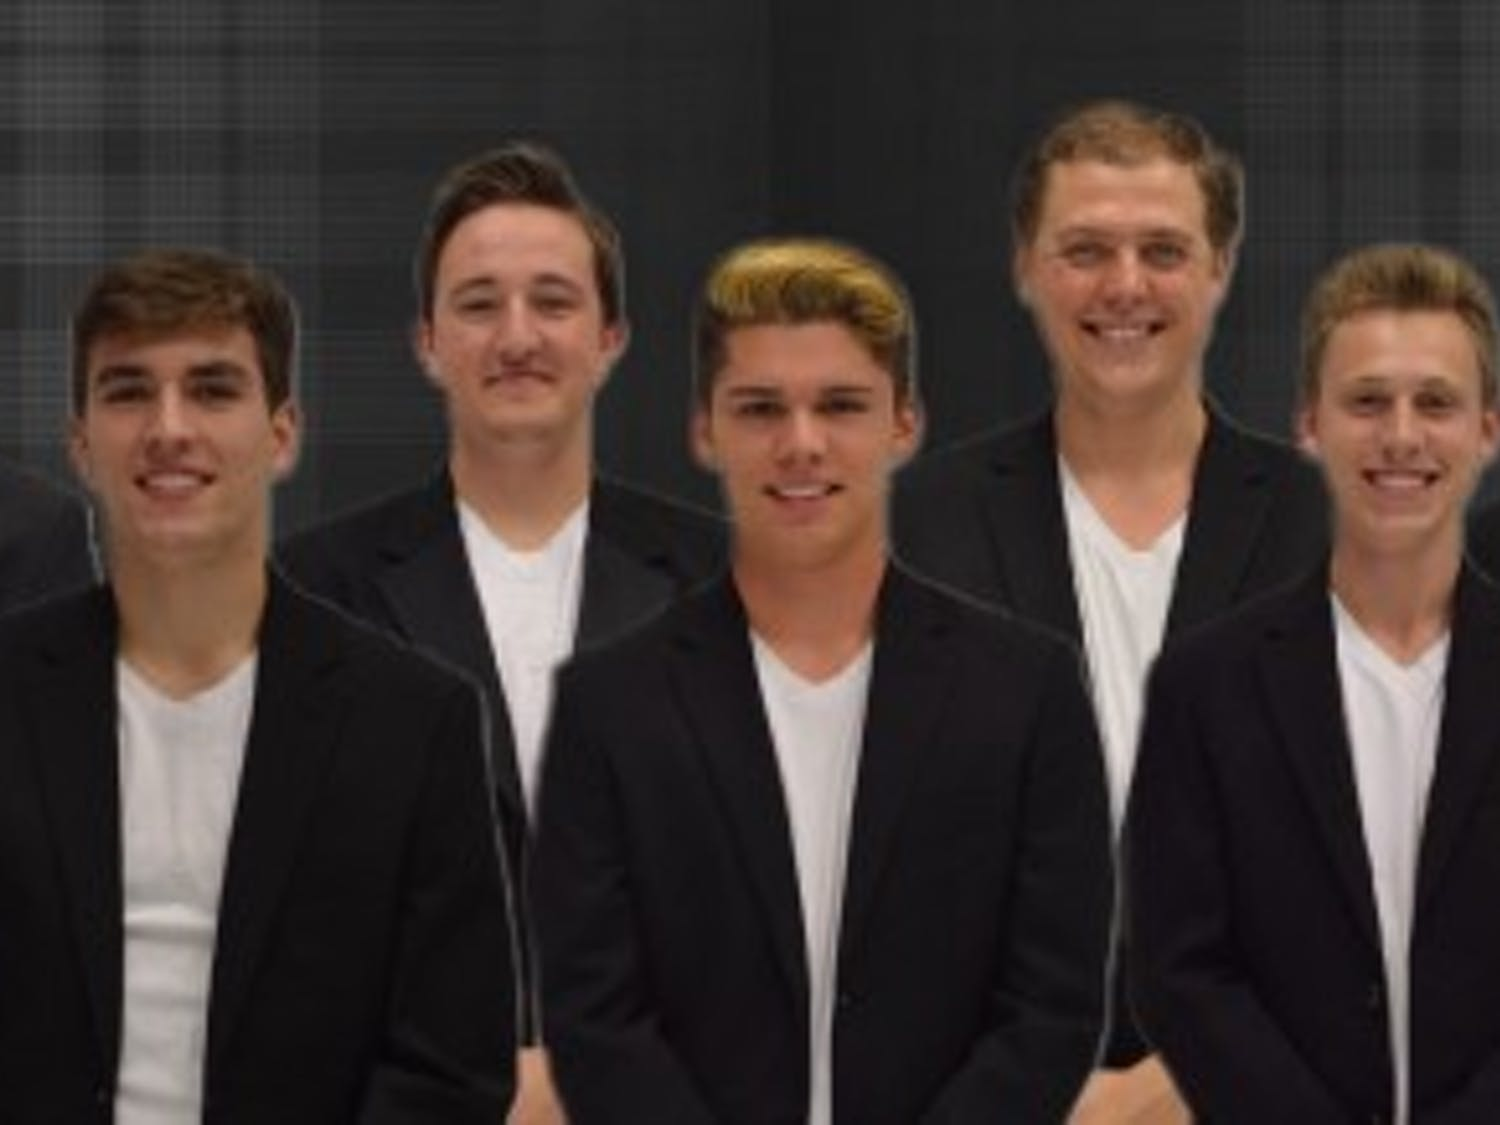 The Buffalo Chips, UB's all-male a capella group is performing their Spring Fling concert this Friday in Slee Hall. The concert is a celebration and send-off for the group's senior members.